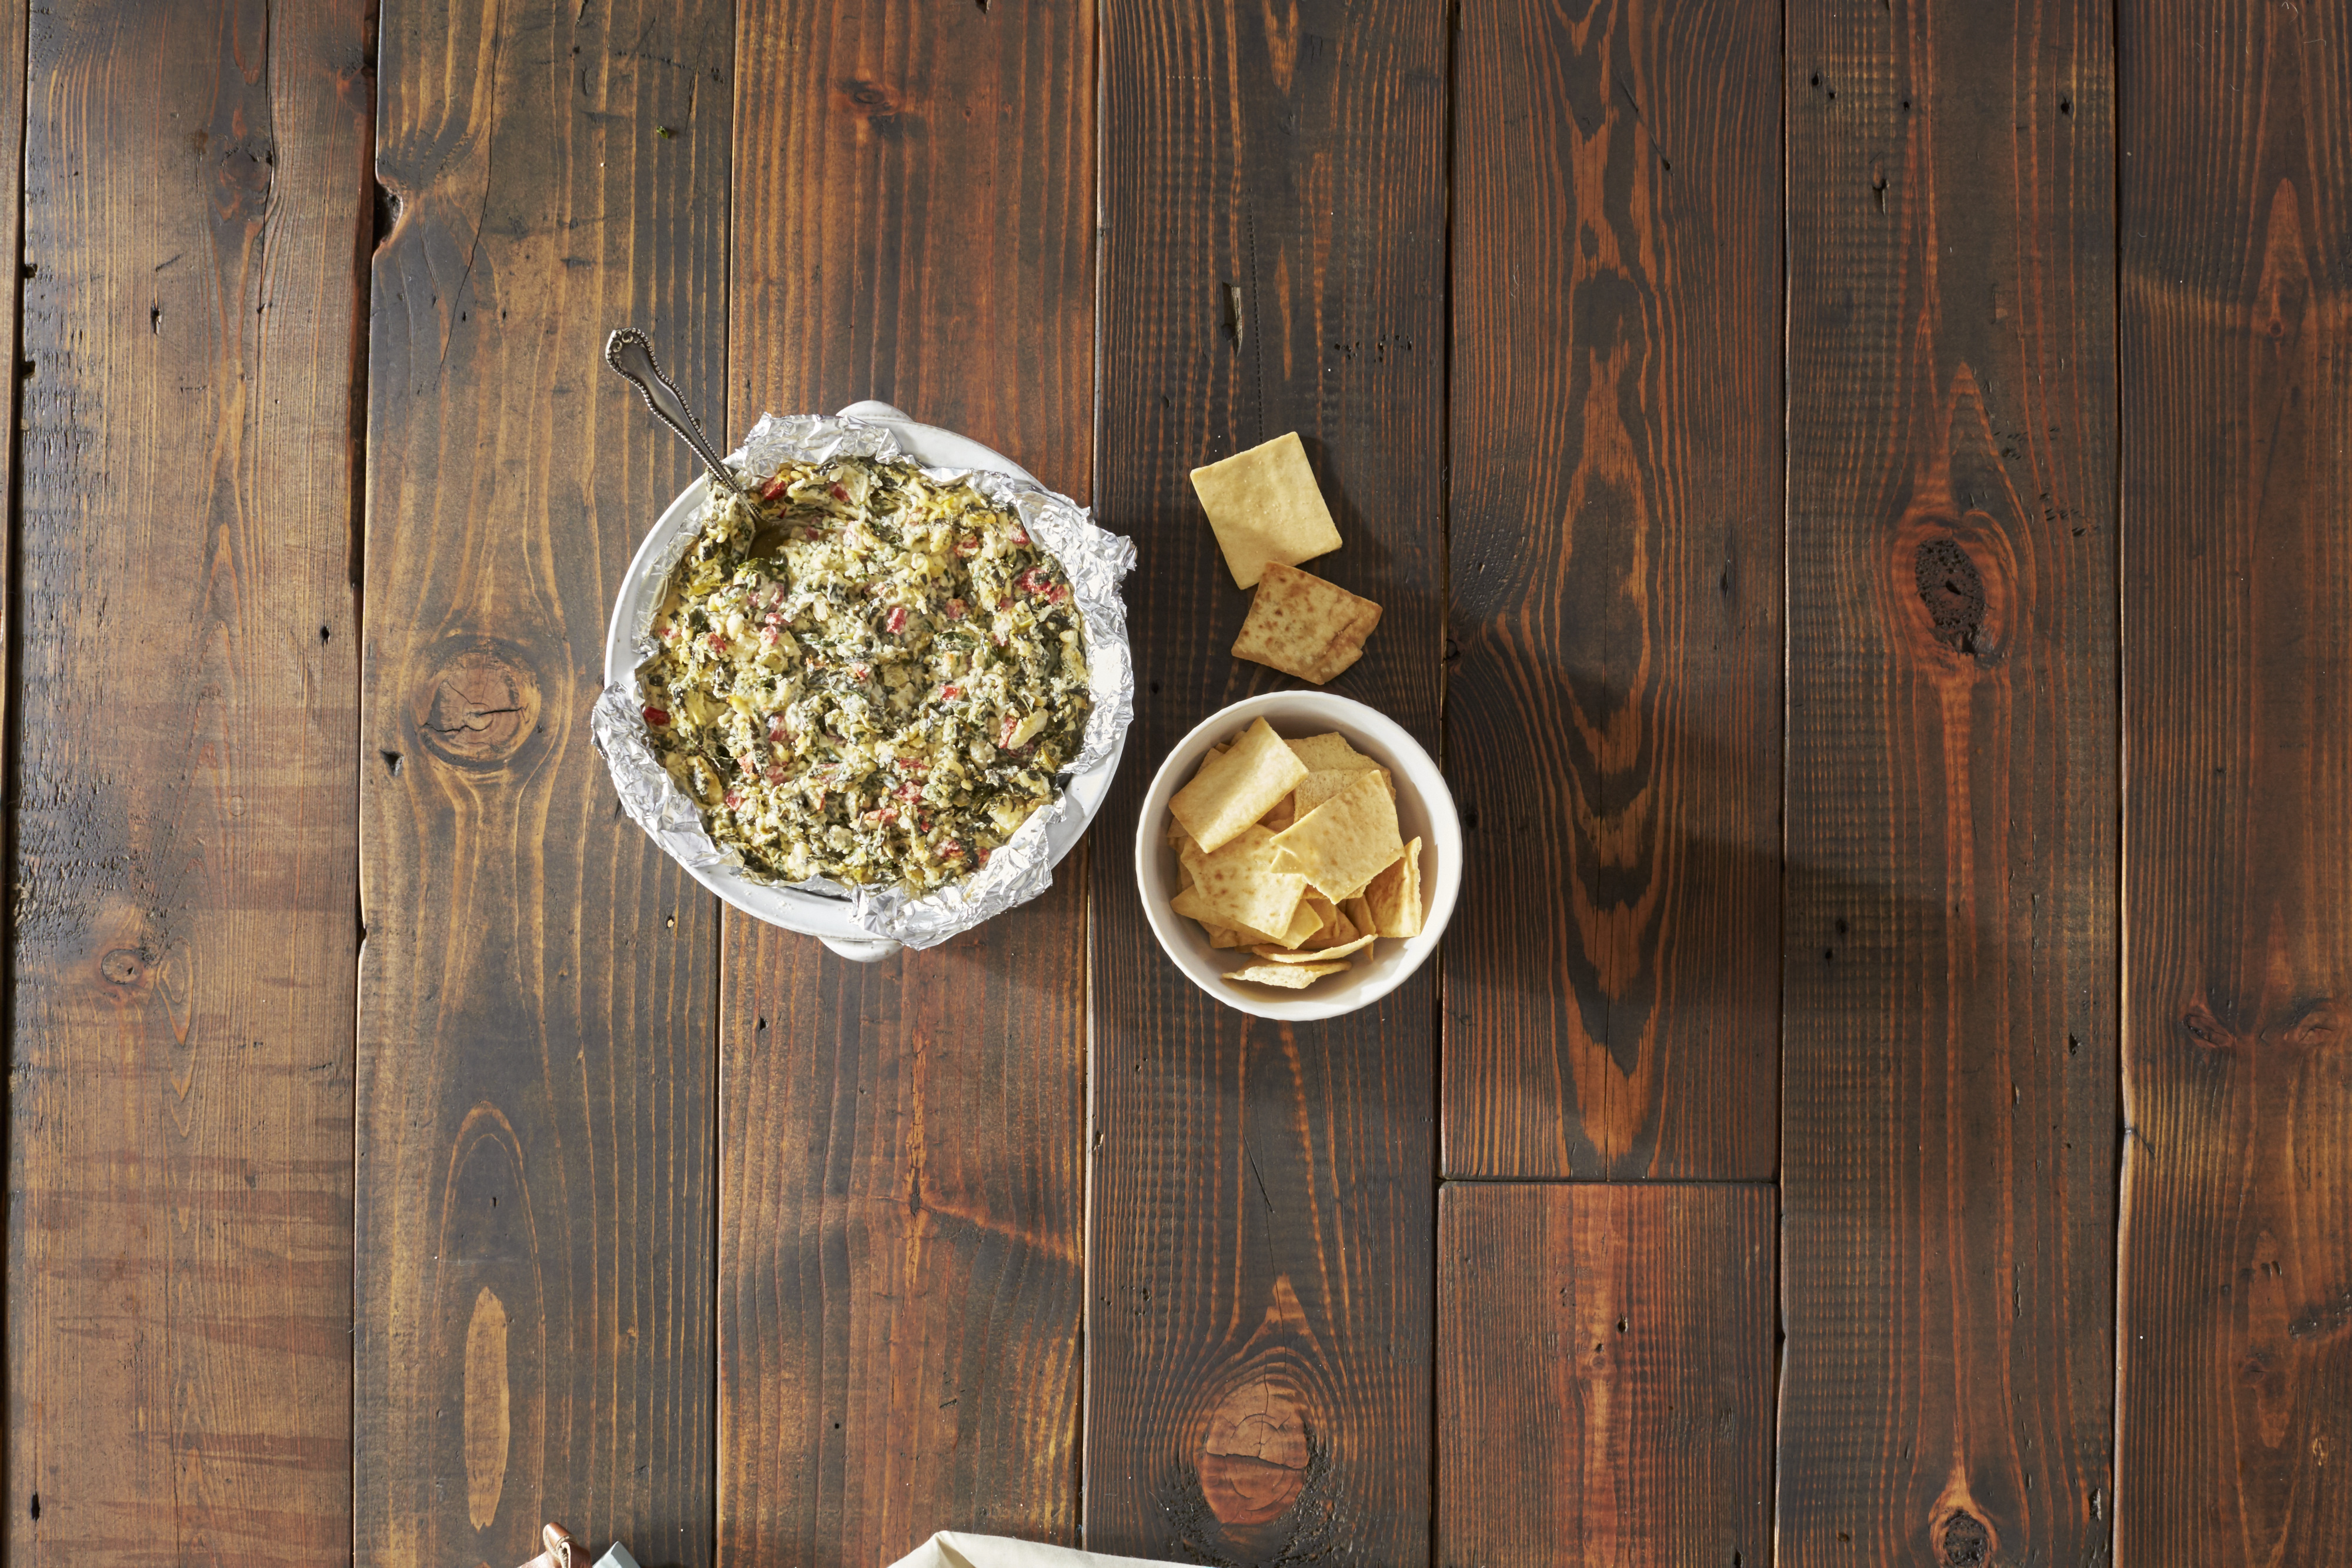 Spinach Artichoke Dip from Reynolds Wrap®